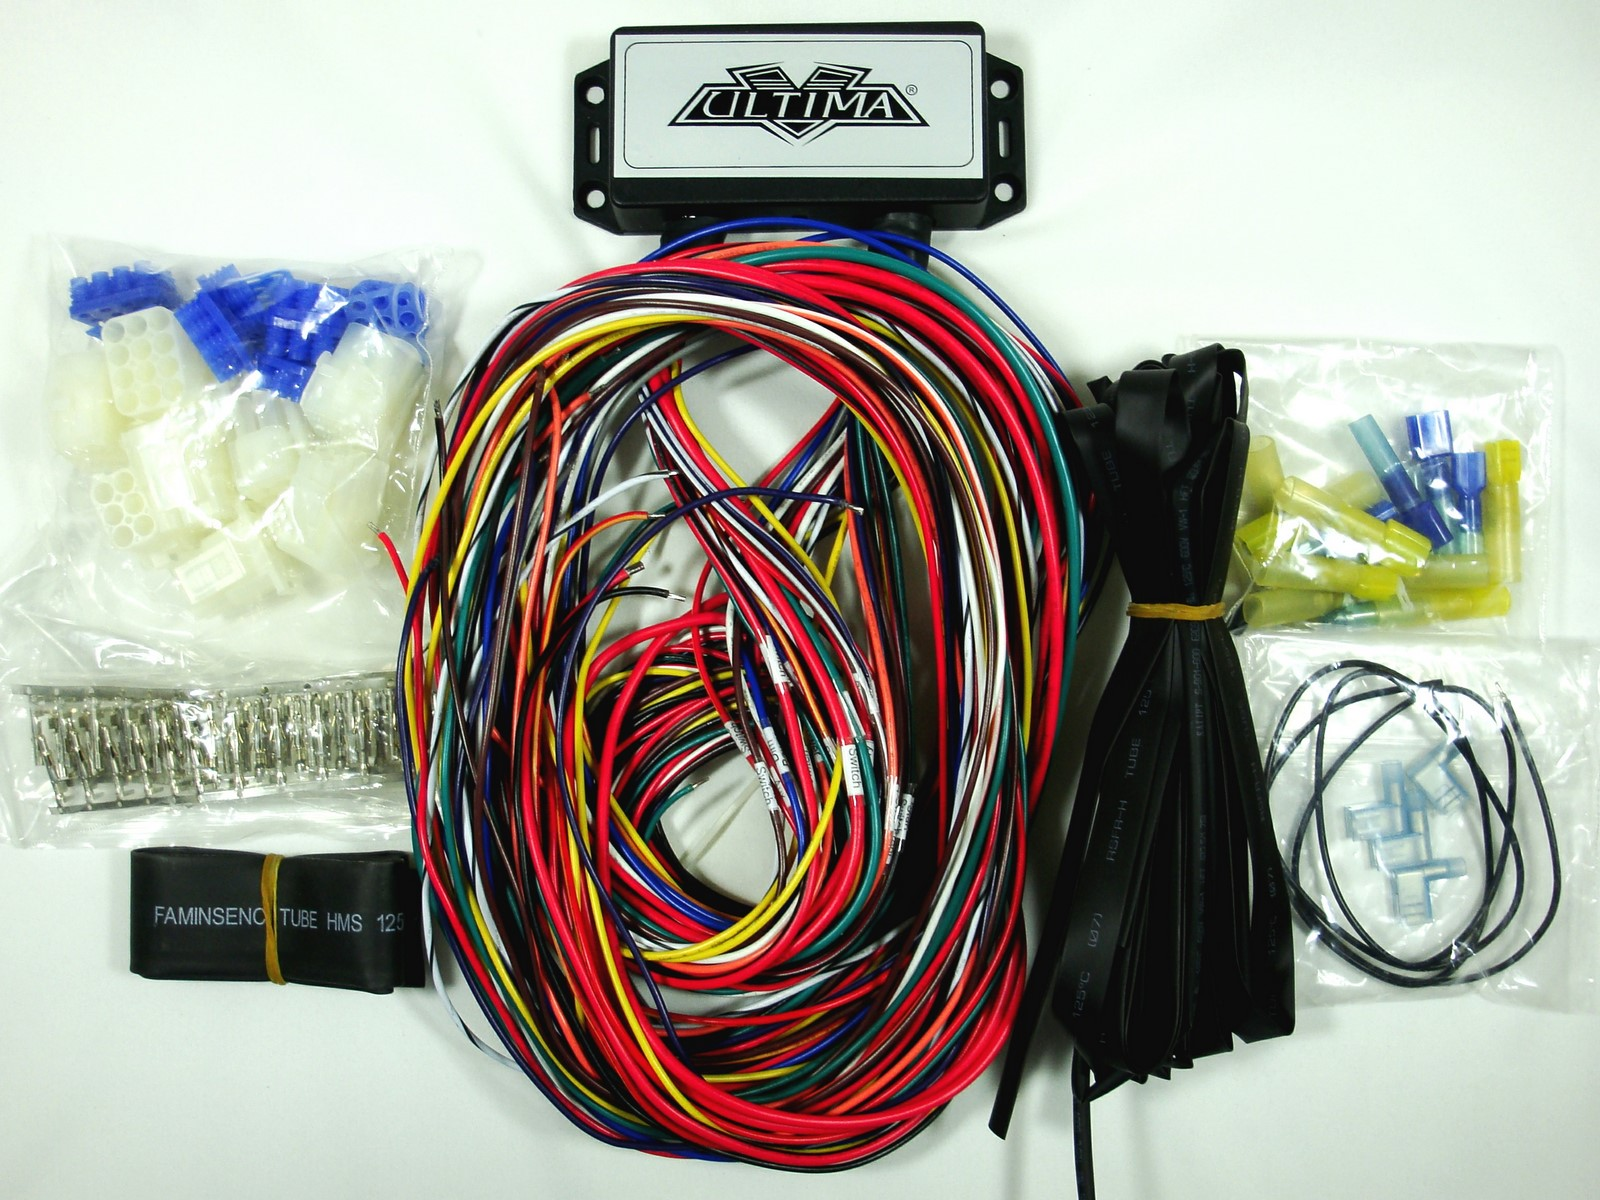 Rebuild Motorcycle Wiring Harness : Ultima plus electronic wiring harness system for harley